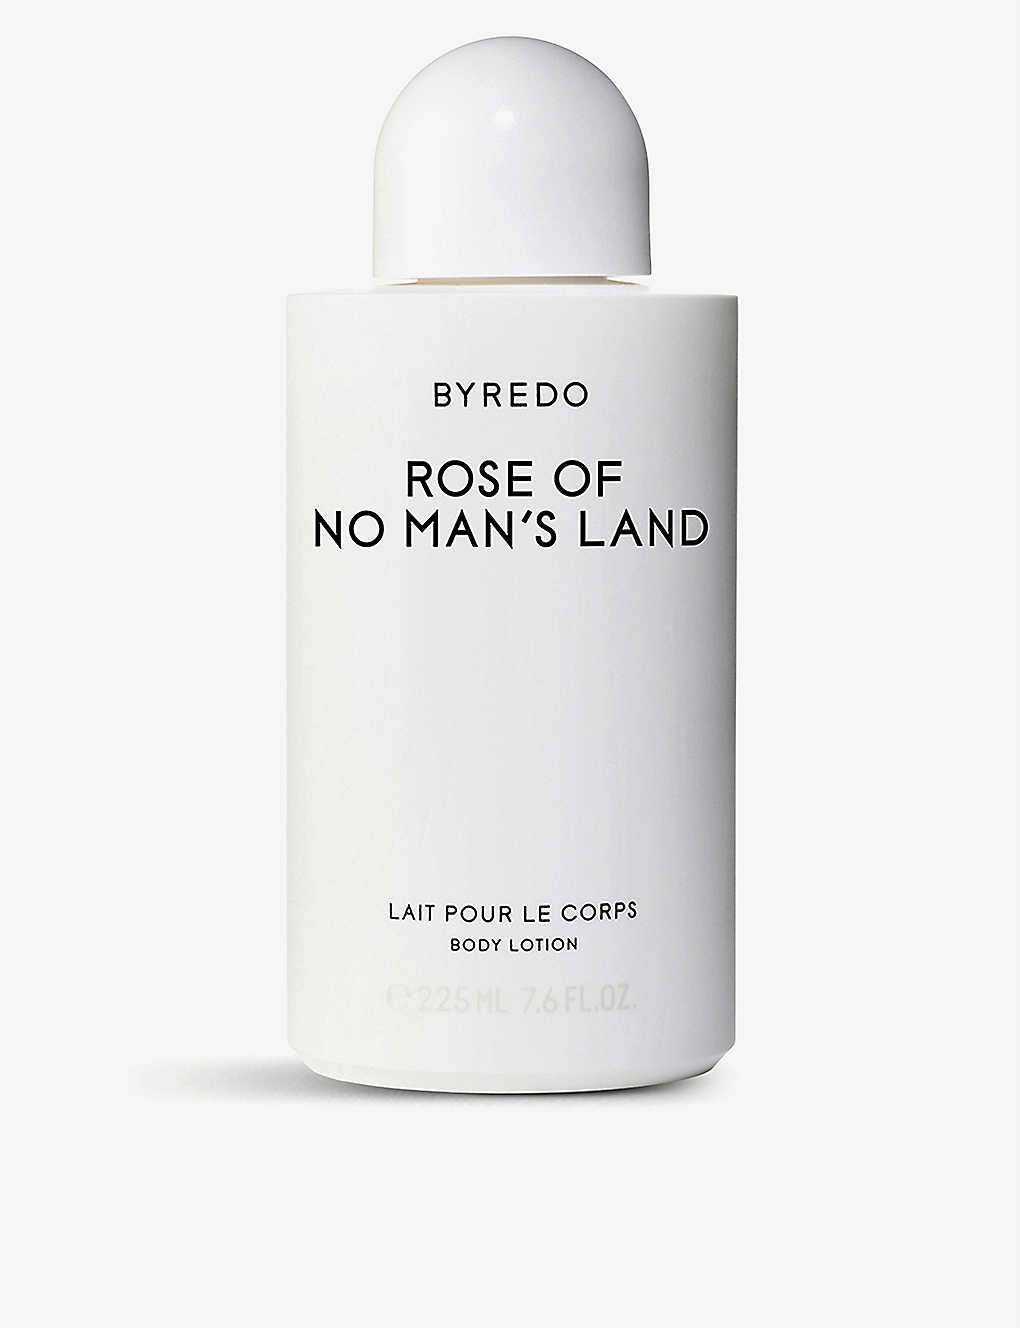 BYREDO: Rose of No Man's Land body lotion 225ml